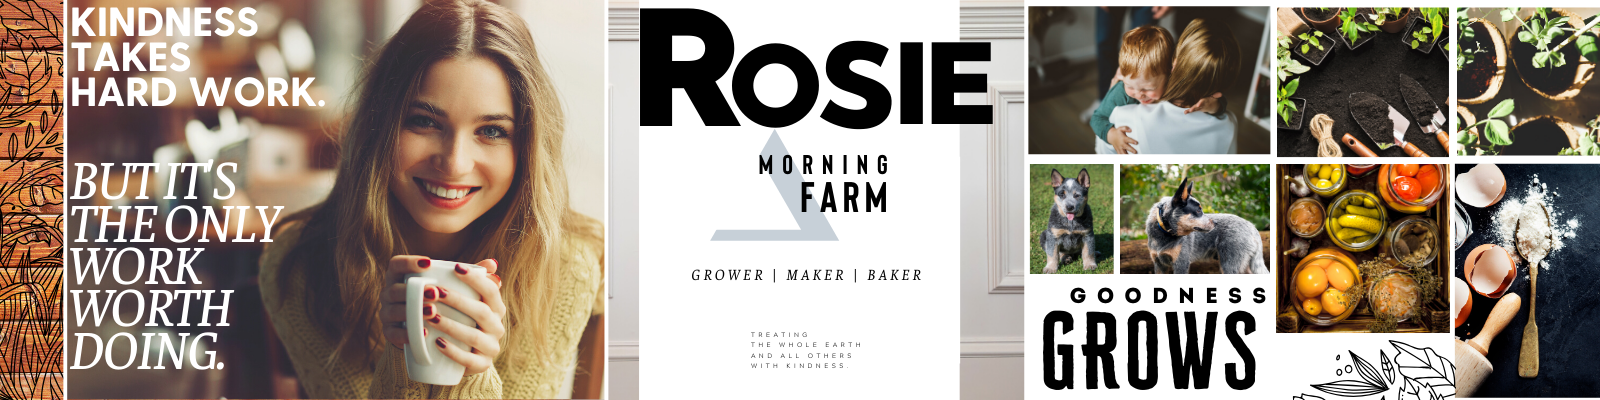 Brand stylescape created by Owl Street Studio for Rosie Morning Farm